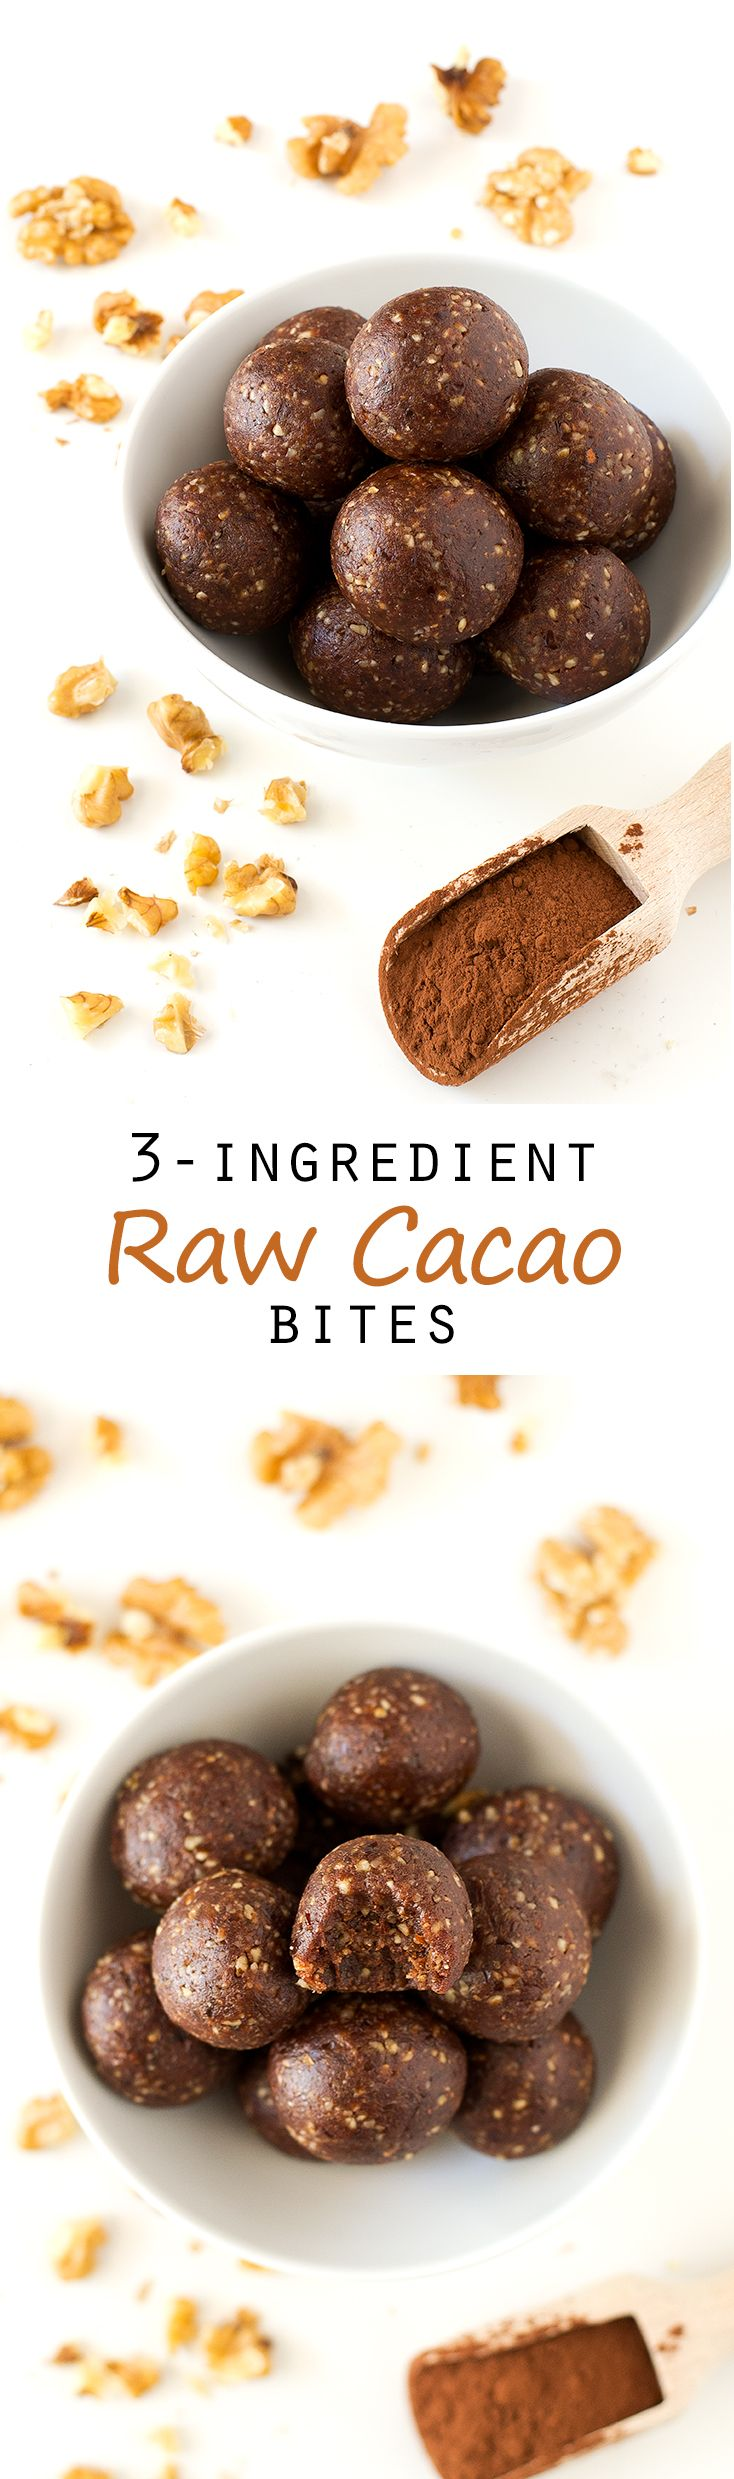 (Vegan and GF) 3-Ingredient Raw Cacao Bites #vegan #glutenfree